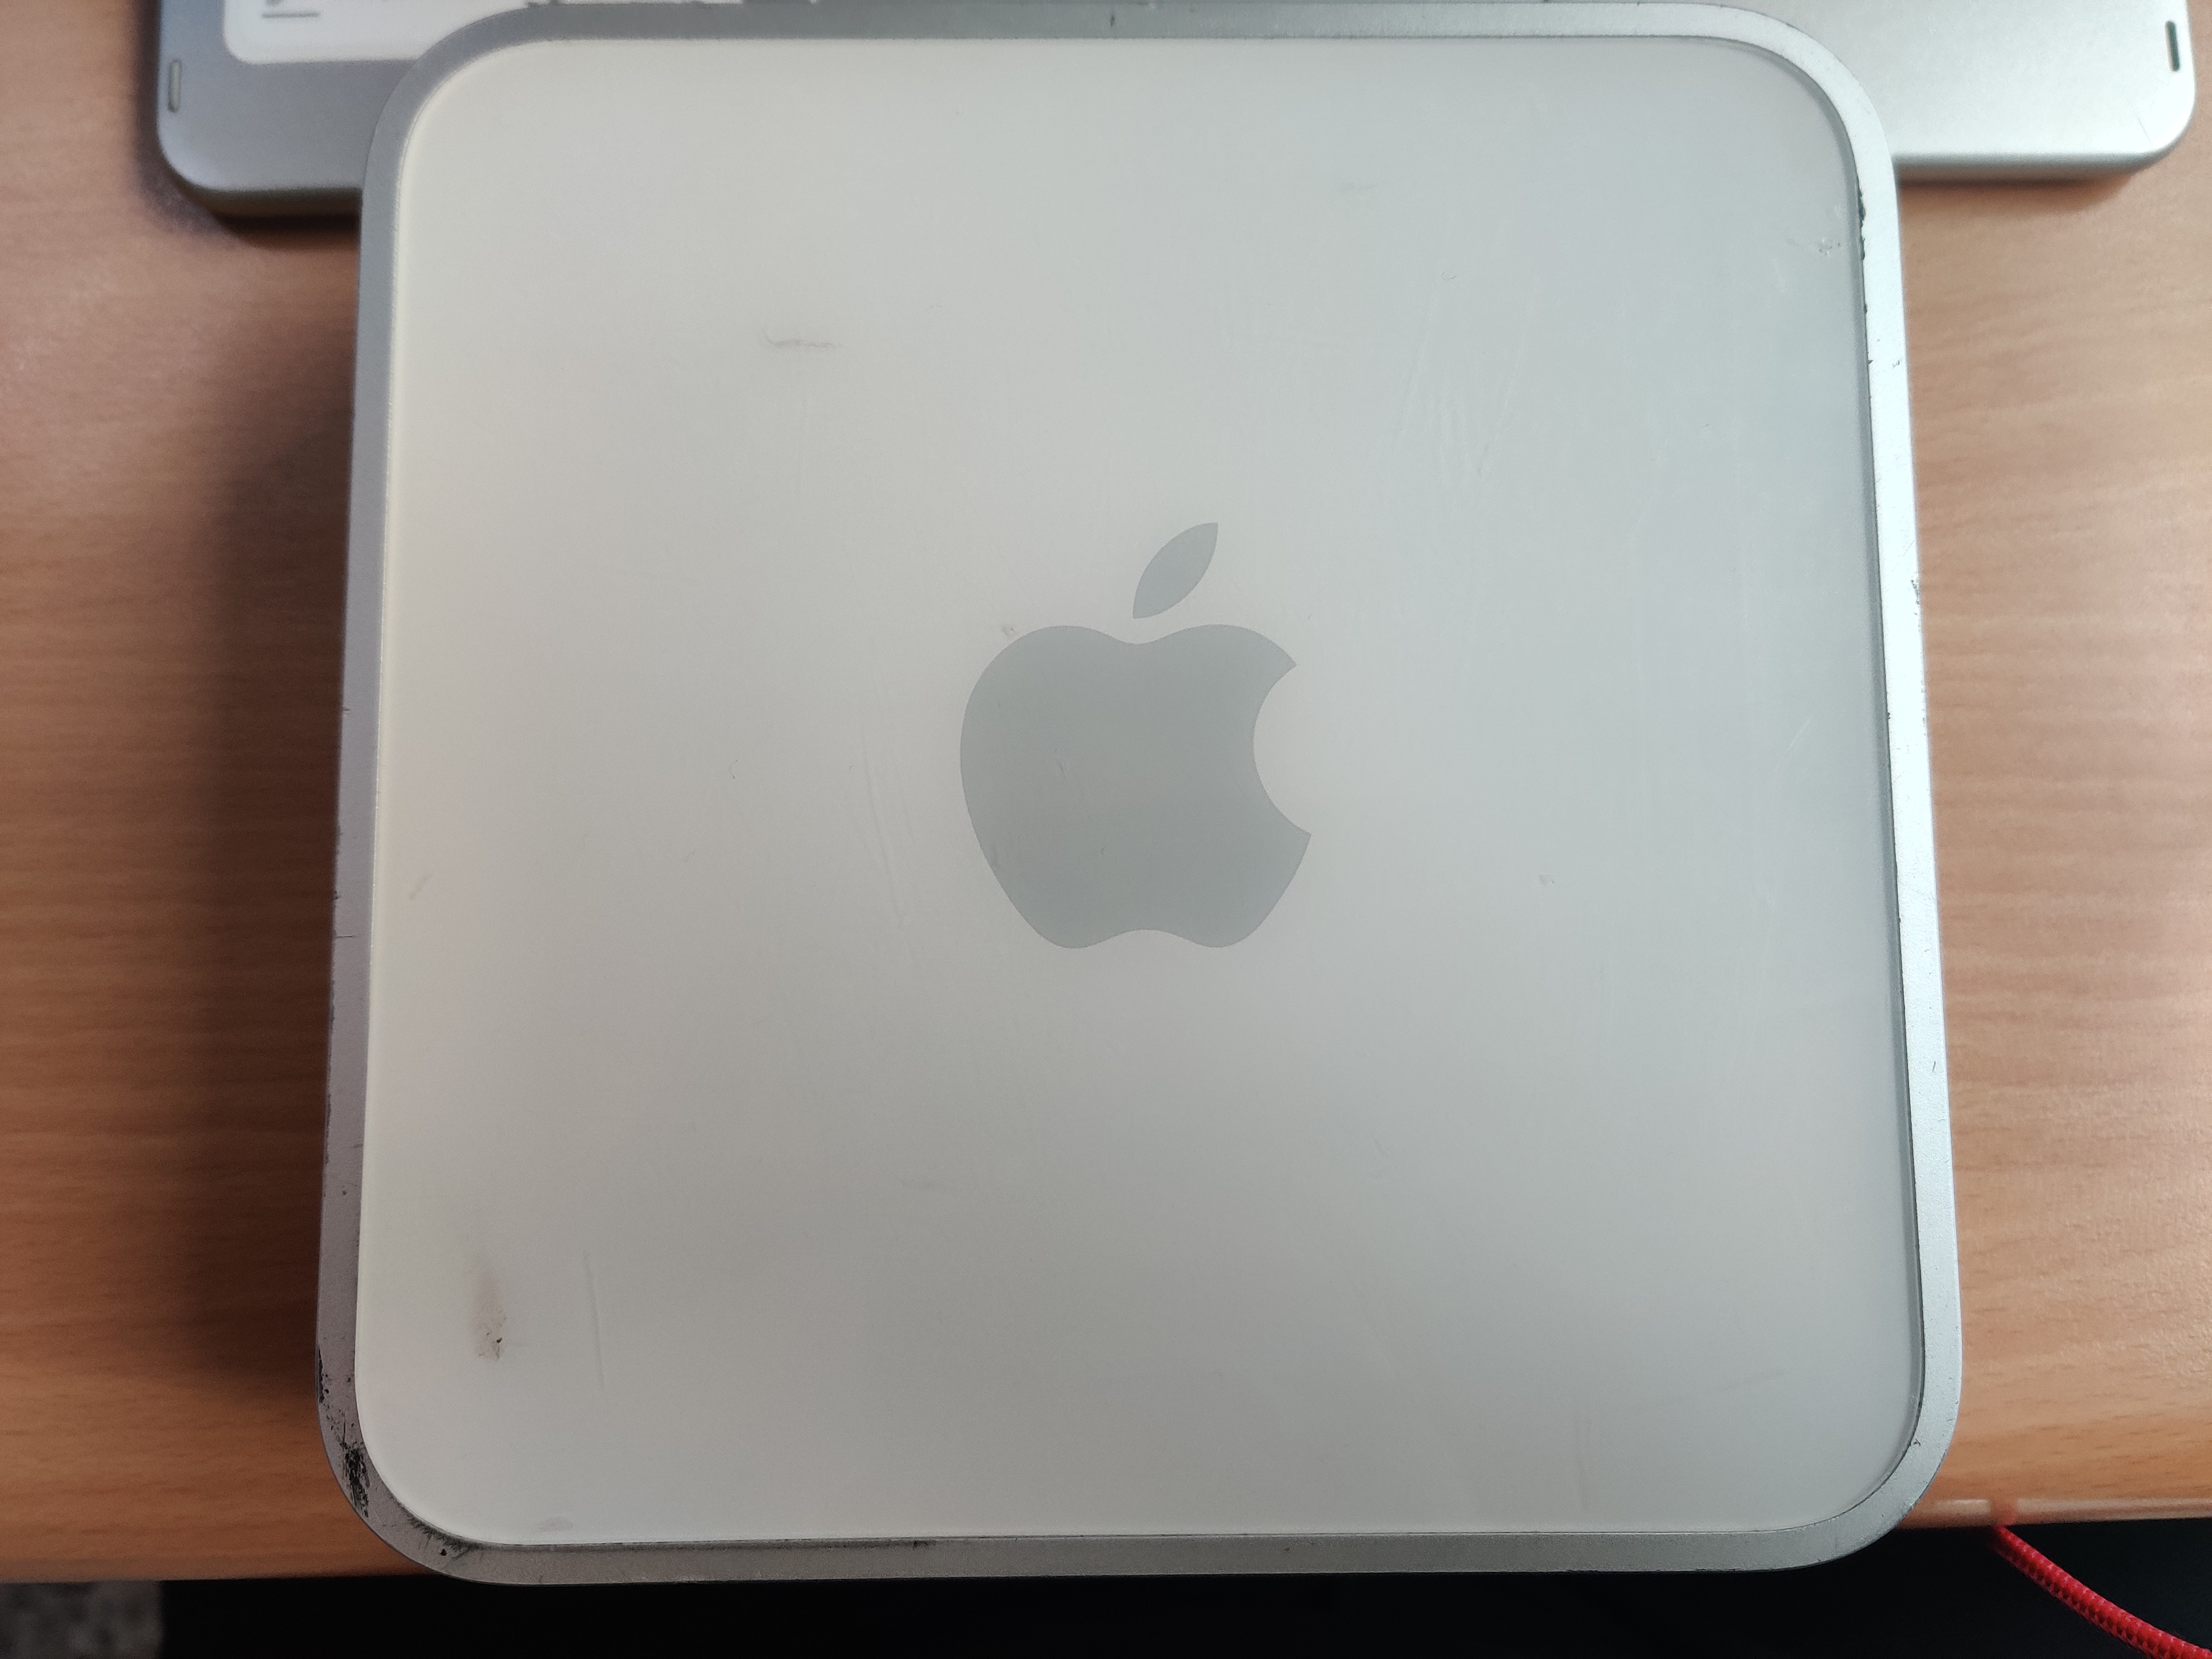 Top panel /w Apple logo